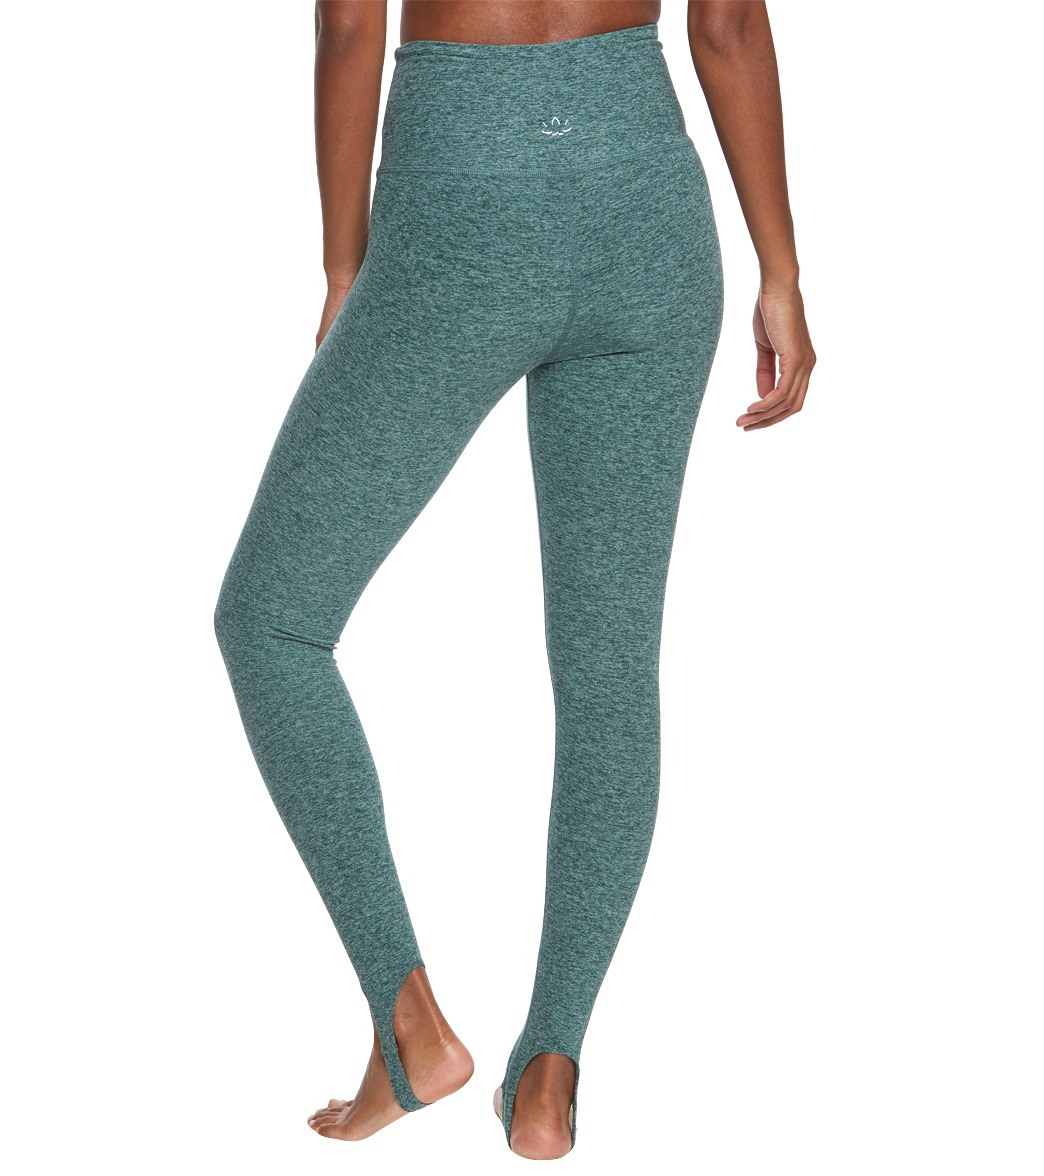 af7abe728aab8 Beyond Yoga Spacedye High Waisted Riding Yoga Leggings at YogaOutlet ...